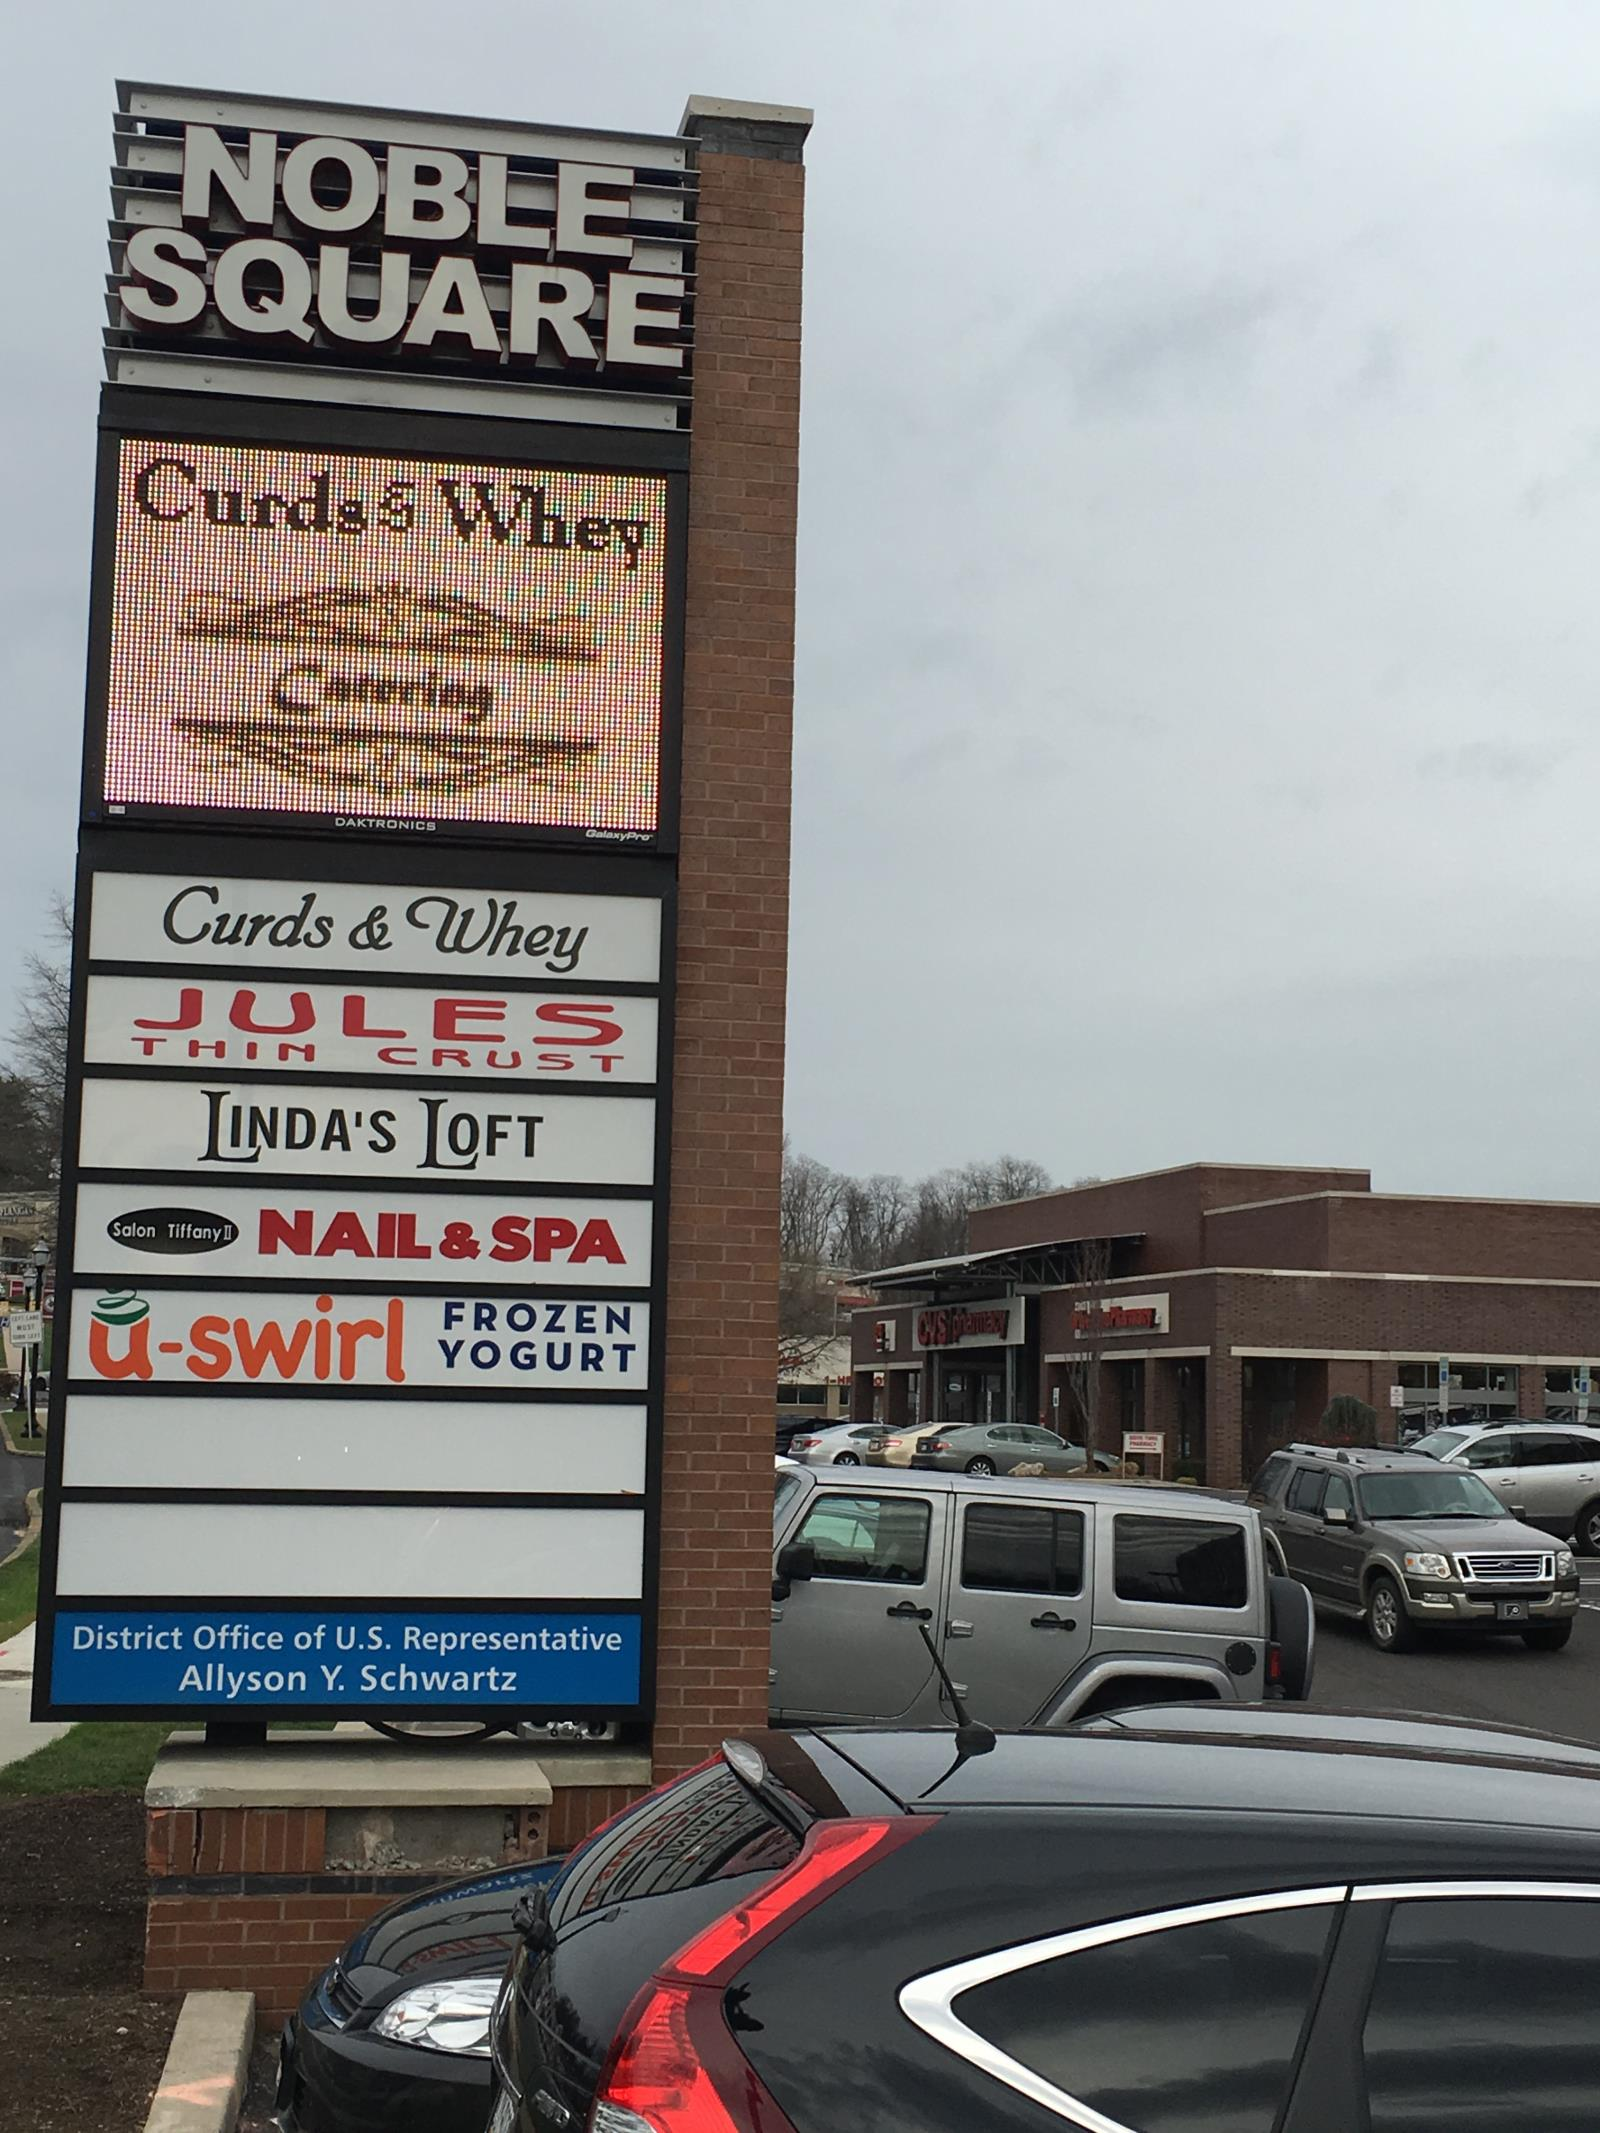 Noble square sign